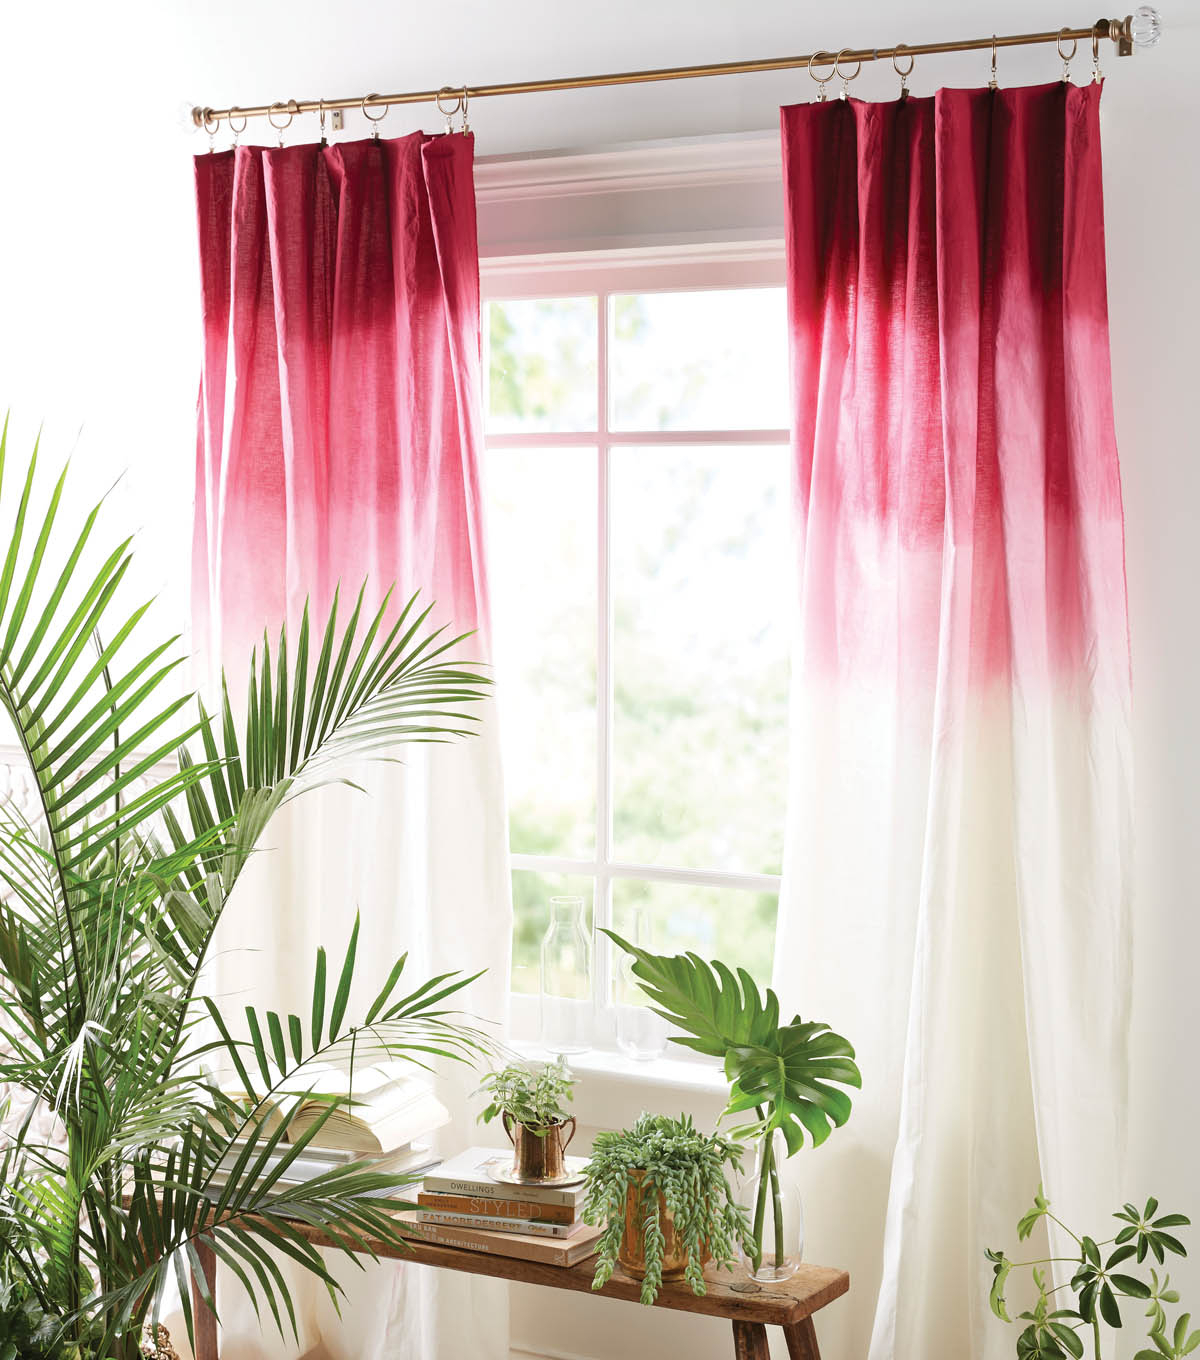 How To Make Ombre Curtains: Diy Ombre Curtains | Joann With Regard To Ombre Embroidery Curtain Panels (View 11 of 20)